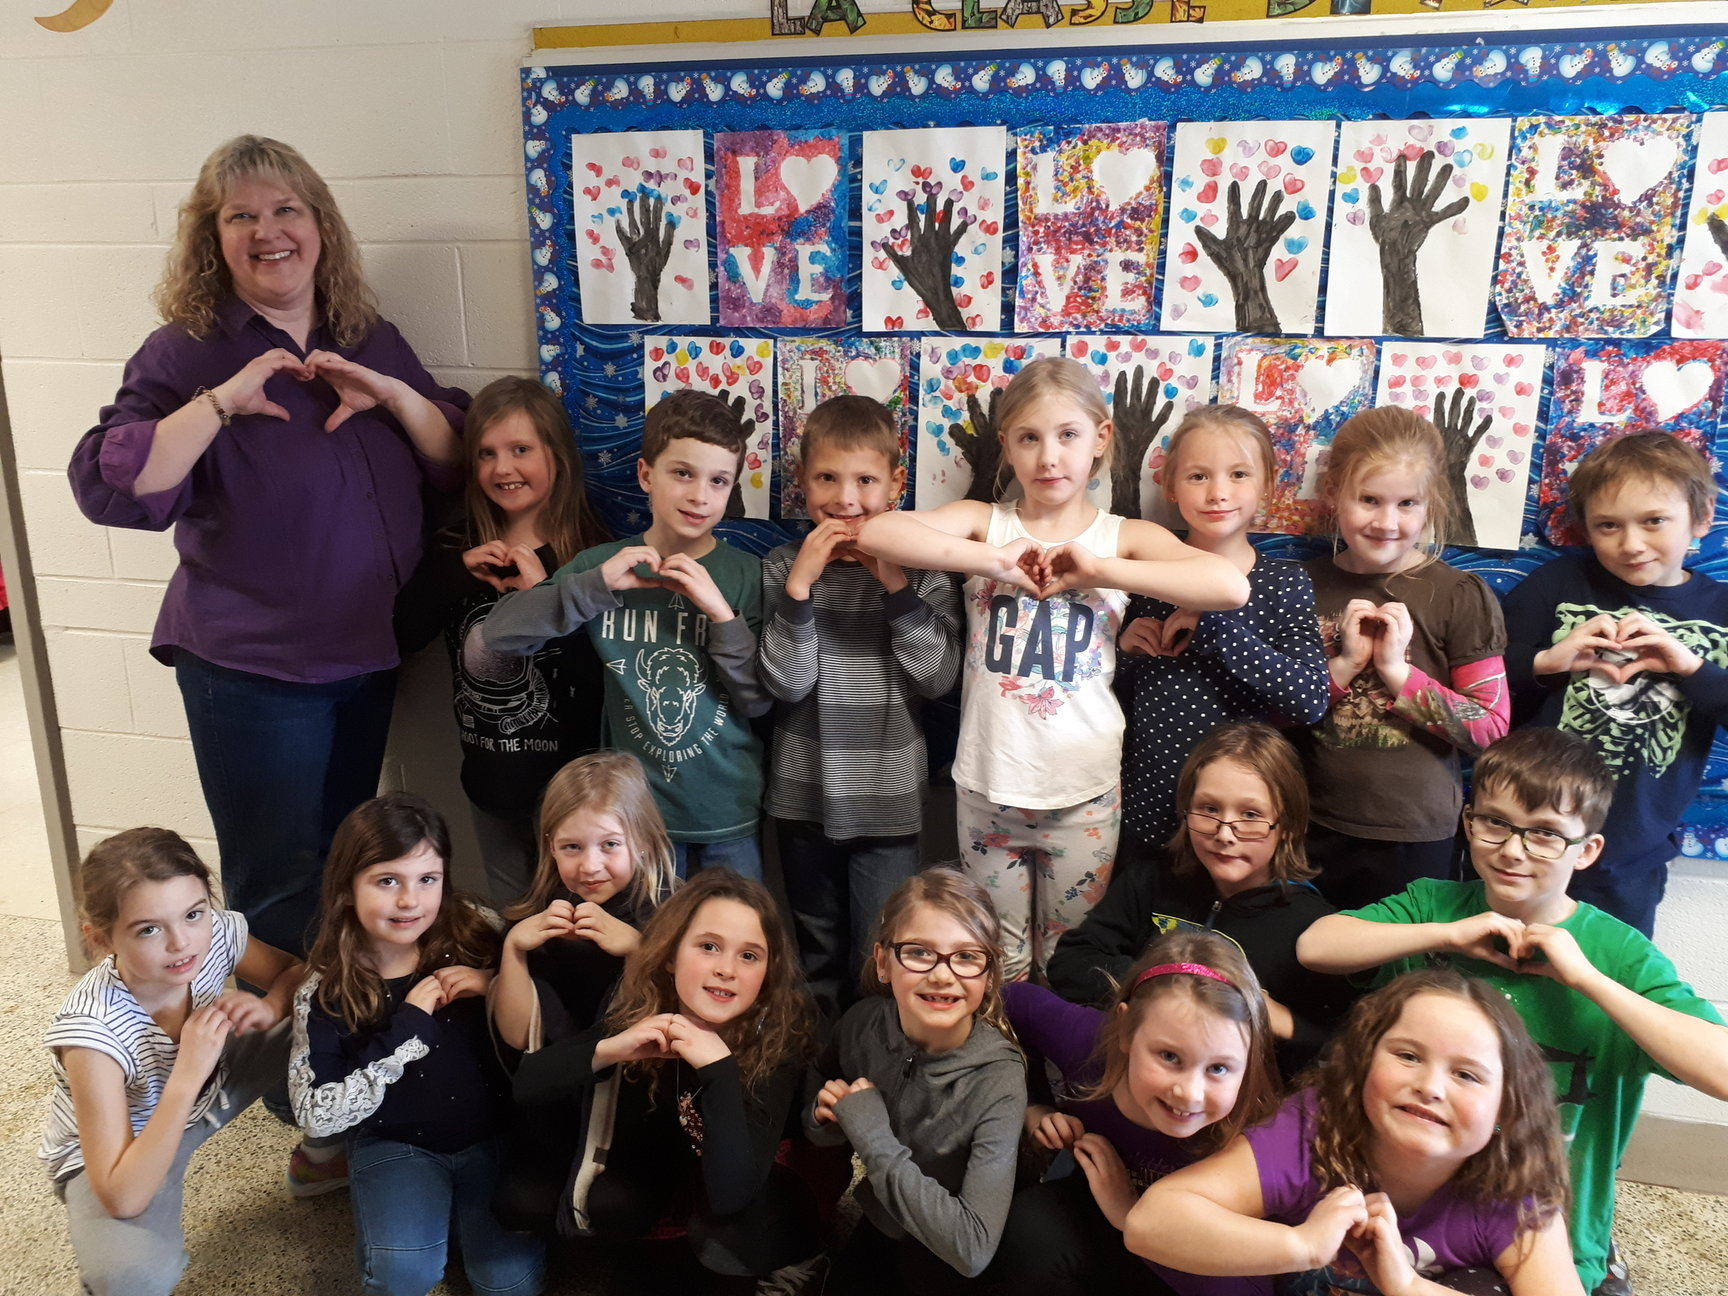 One hundred days of school marked by 300 acts of kindness at Leslie Frost